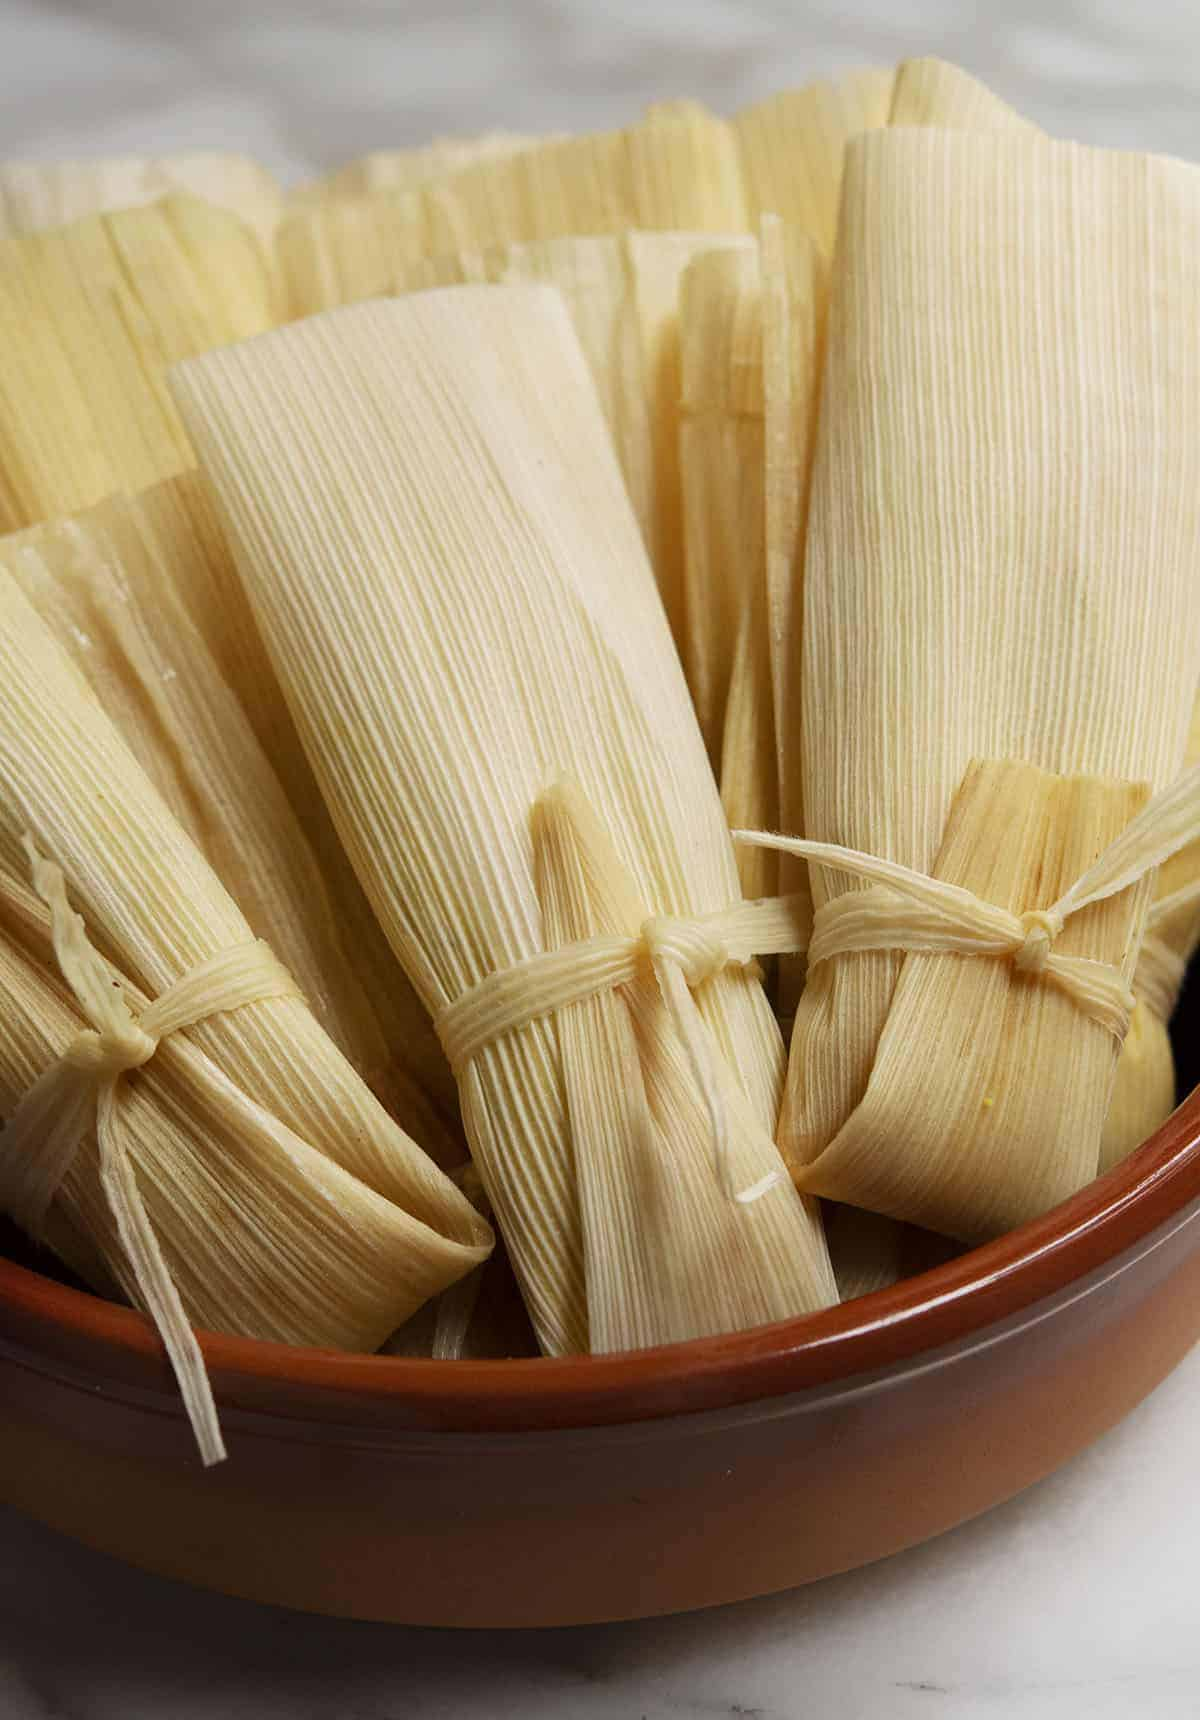 vegetarian tamales ready to steamed and ready to serve